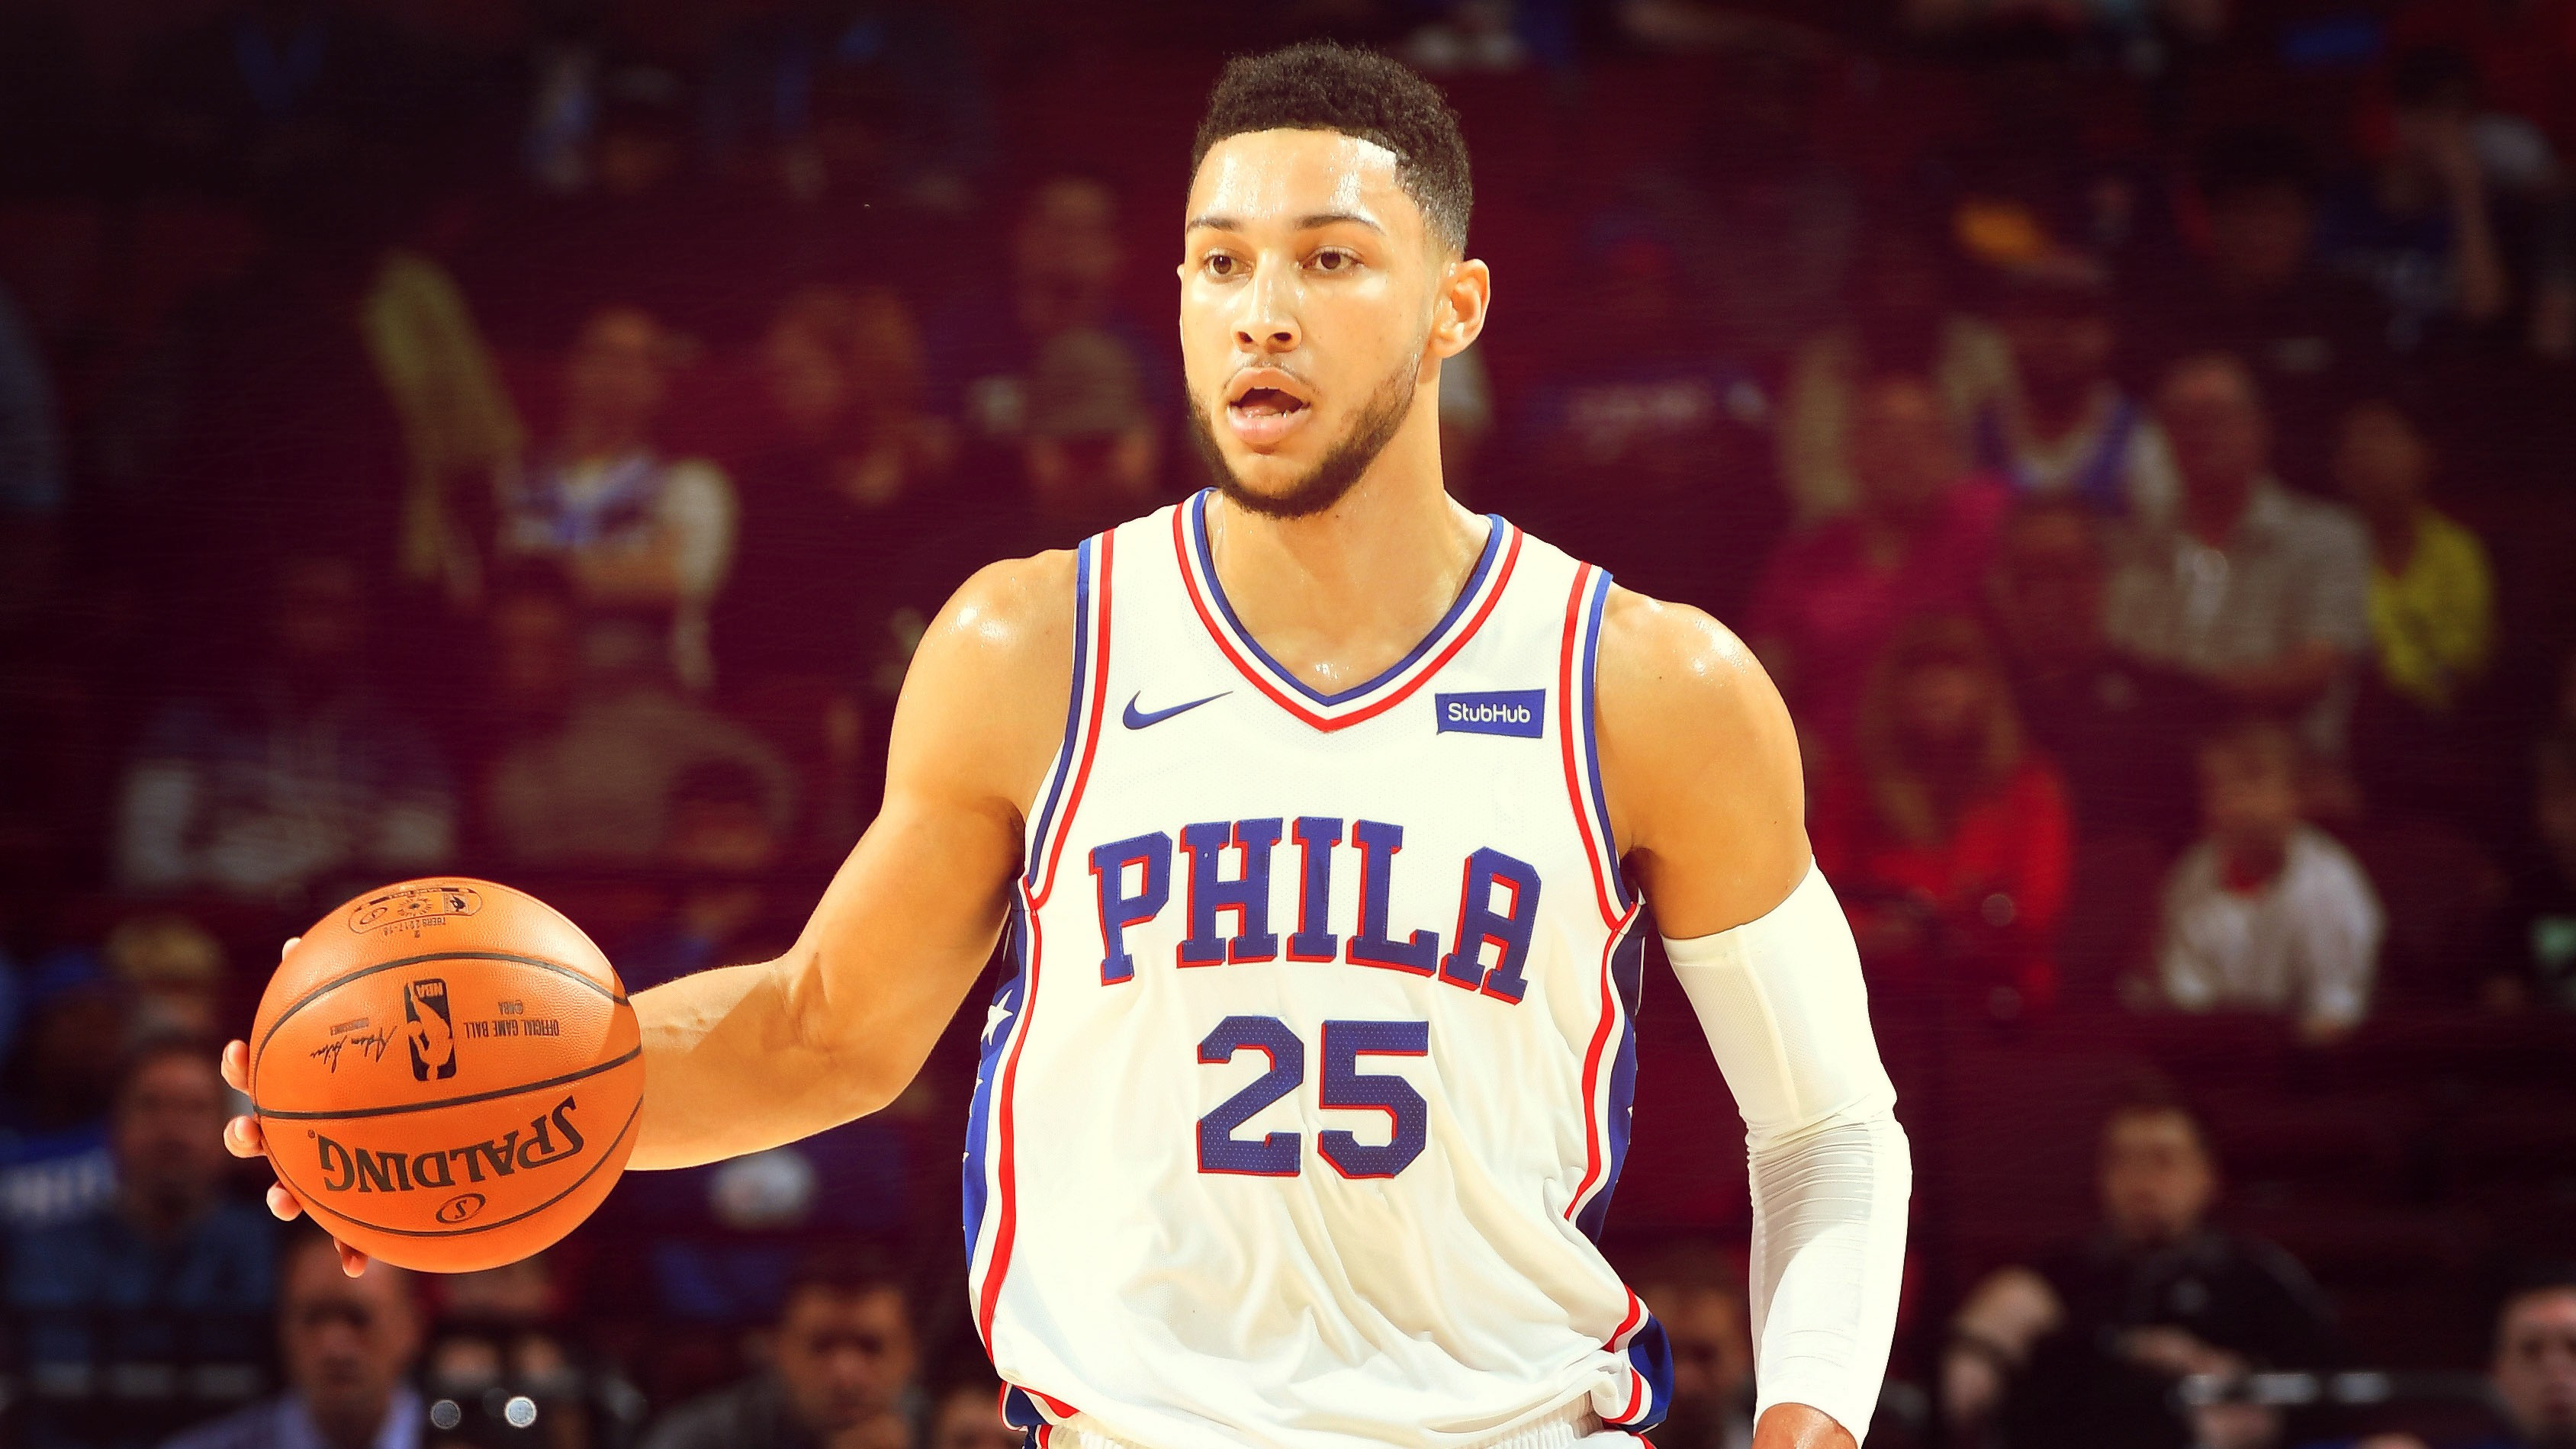 Has Ben Simmons Locked Up The Rookie of The Year Award?